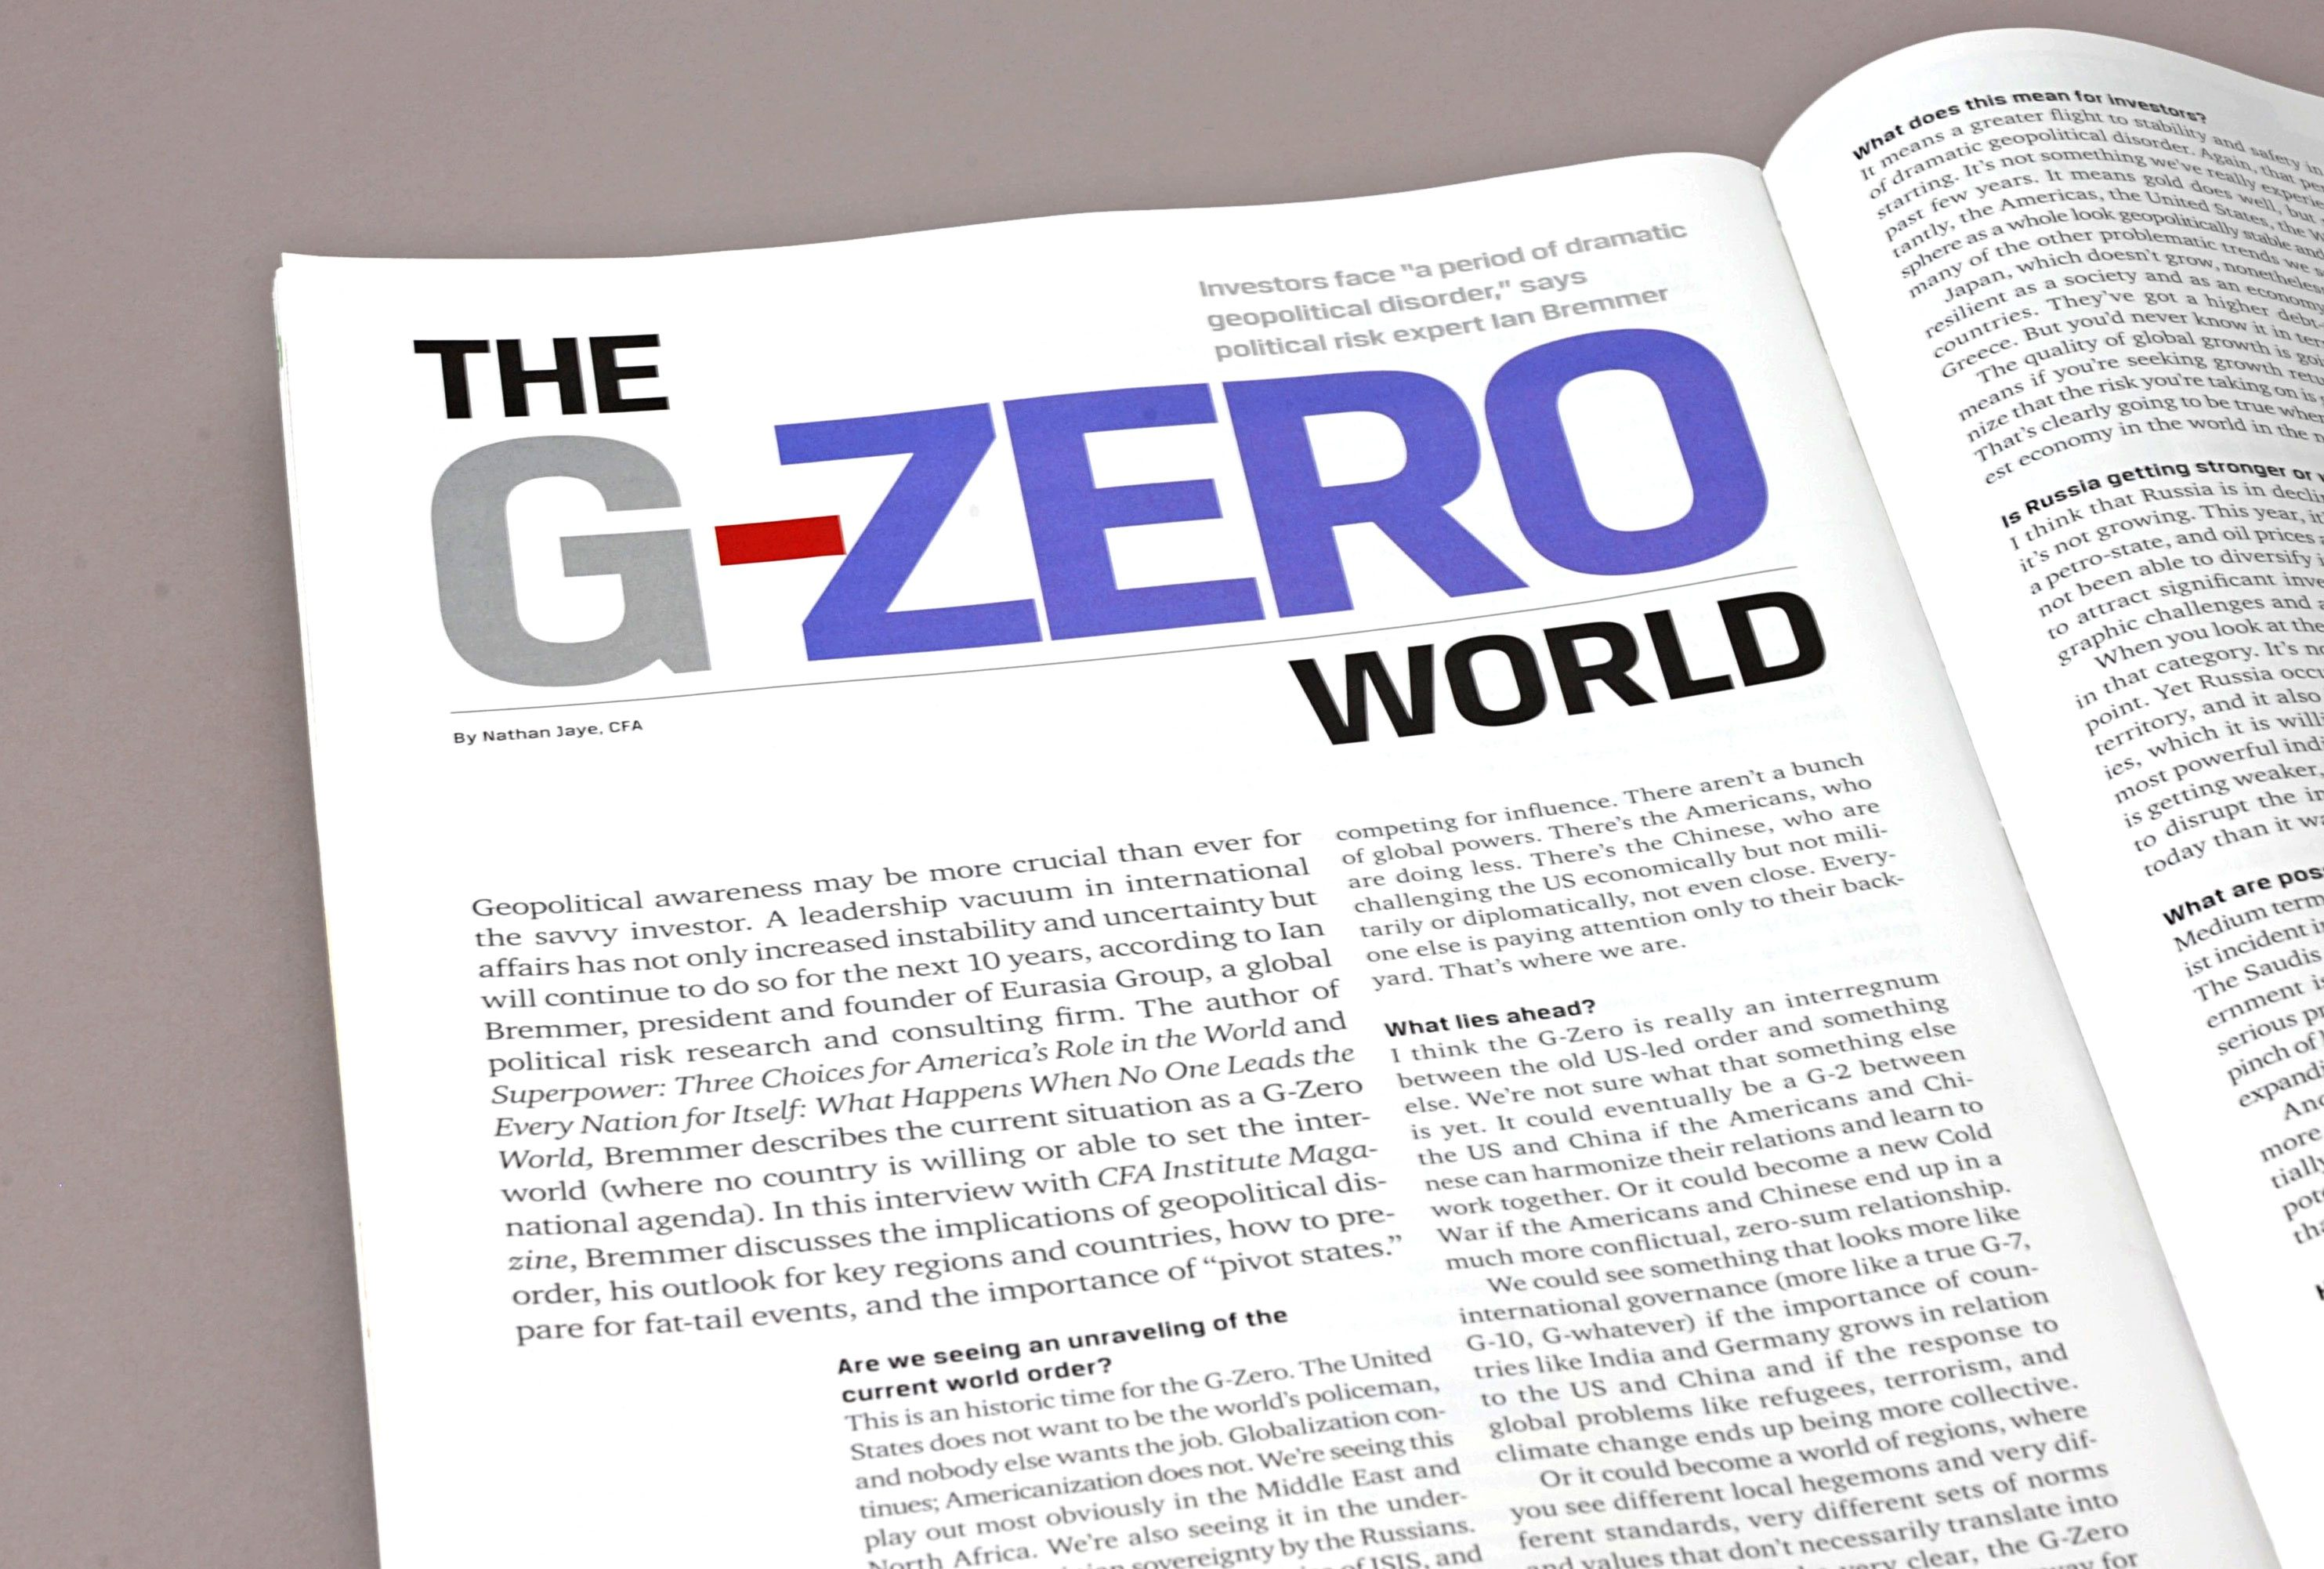 The G-Zero article title treatment